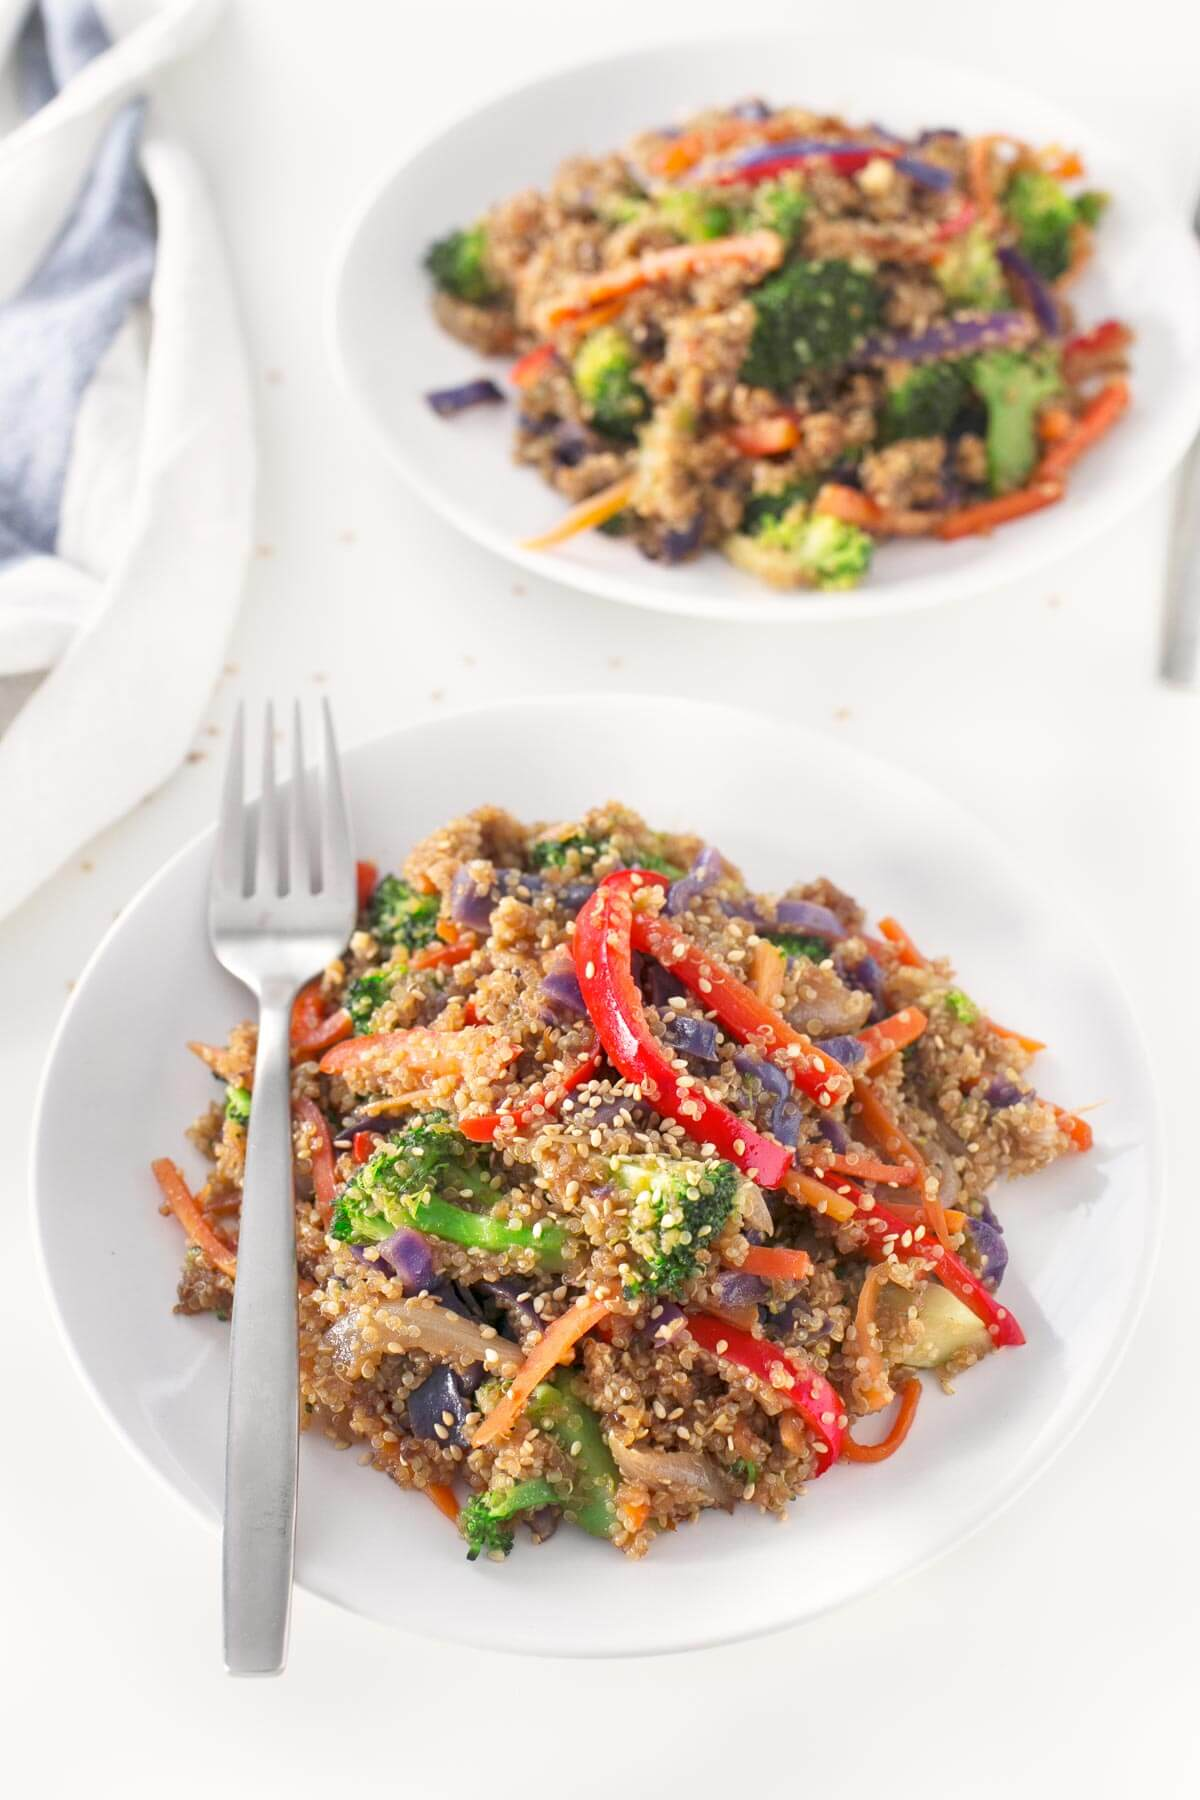 Vegetable and Quinoa Wok. - This vegetable and quinoa wok is a perfect everyday dish because it is very nutritious and easy to prepare. It is ideal as a recipe for use.